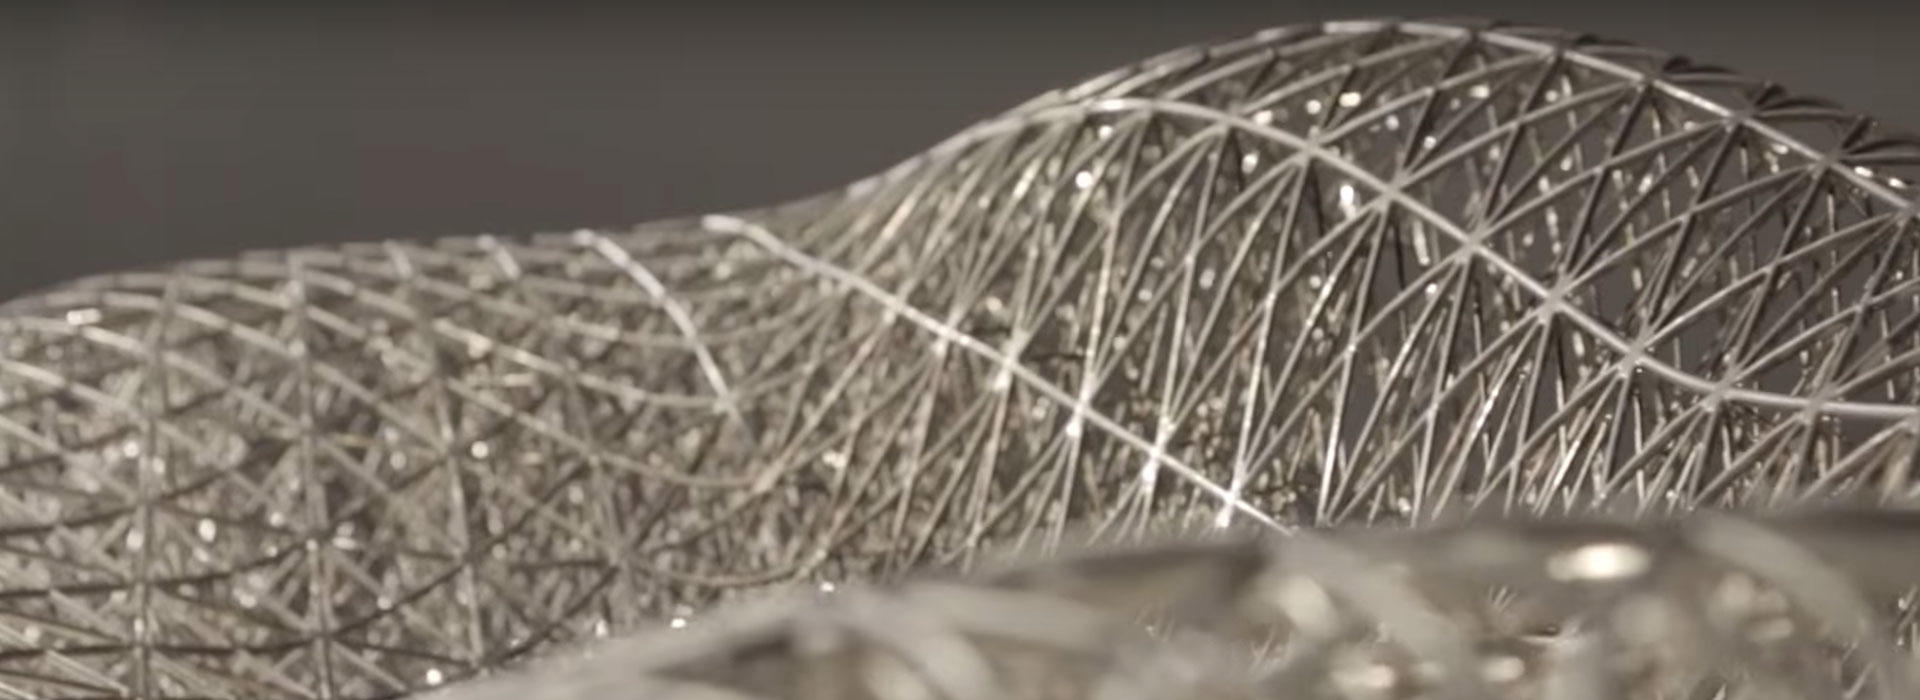 an abstract close up of metal parts made by a 3D printer